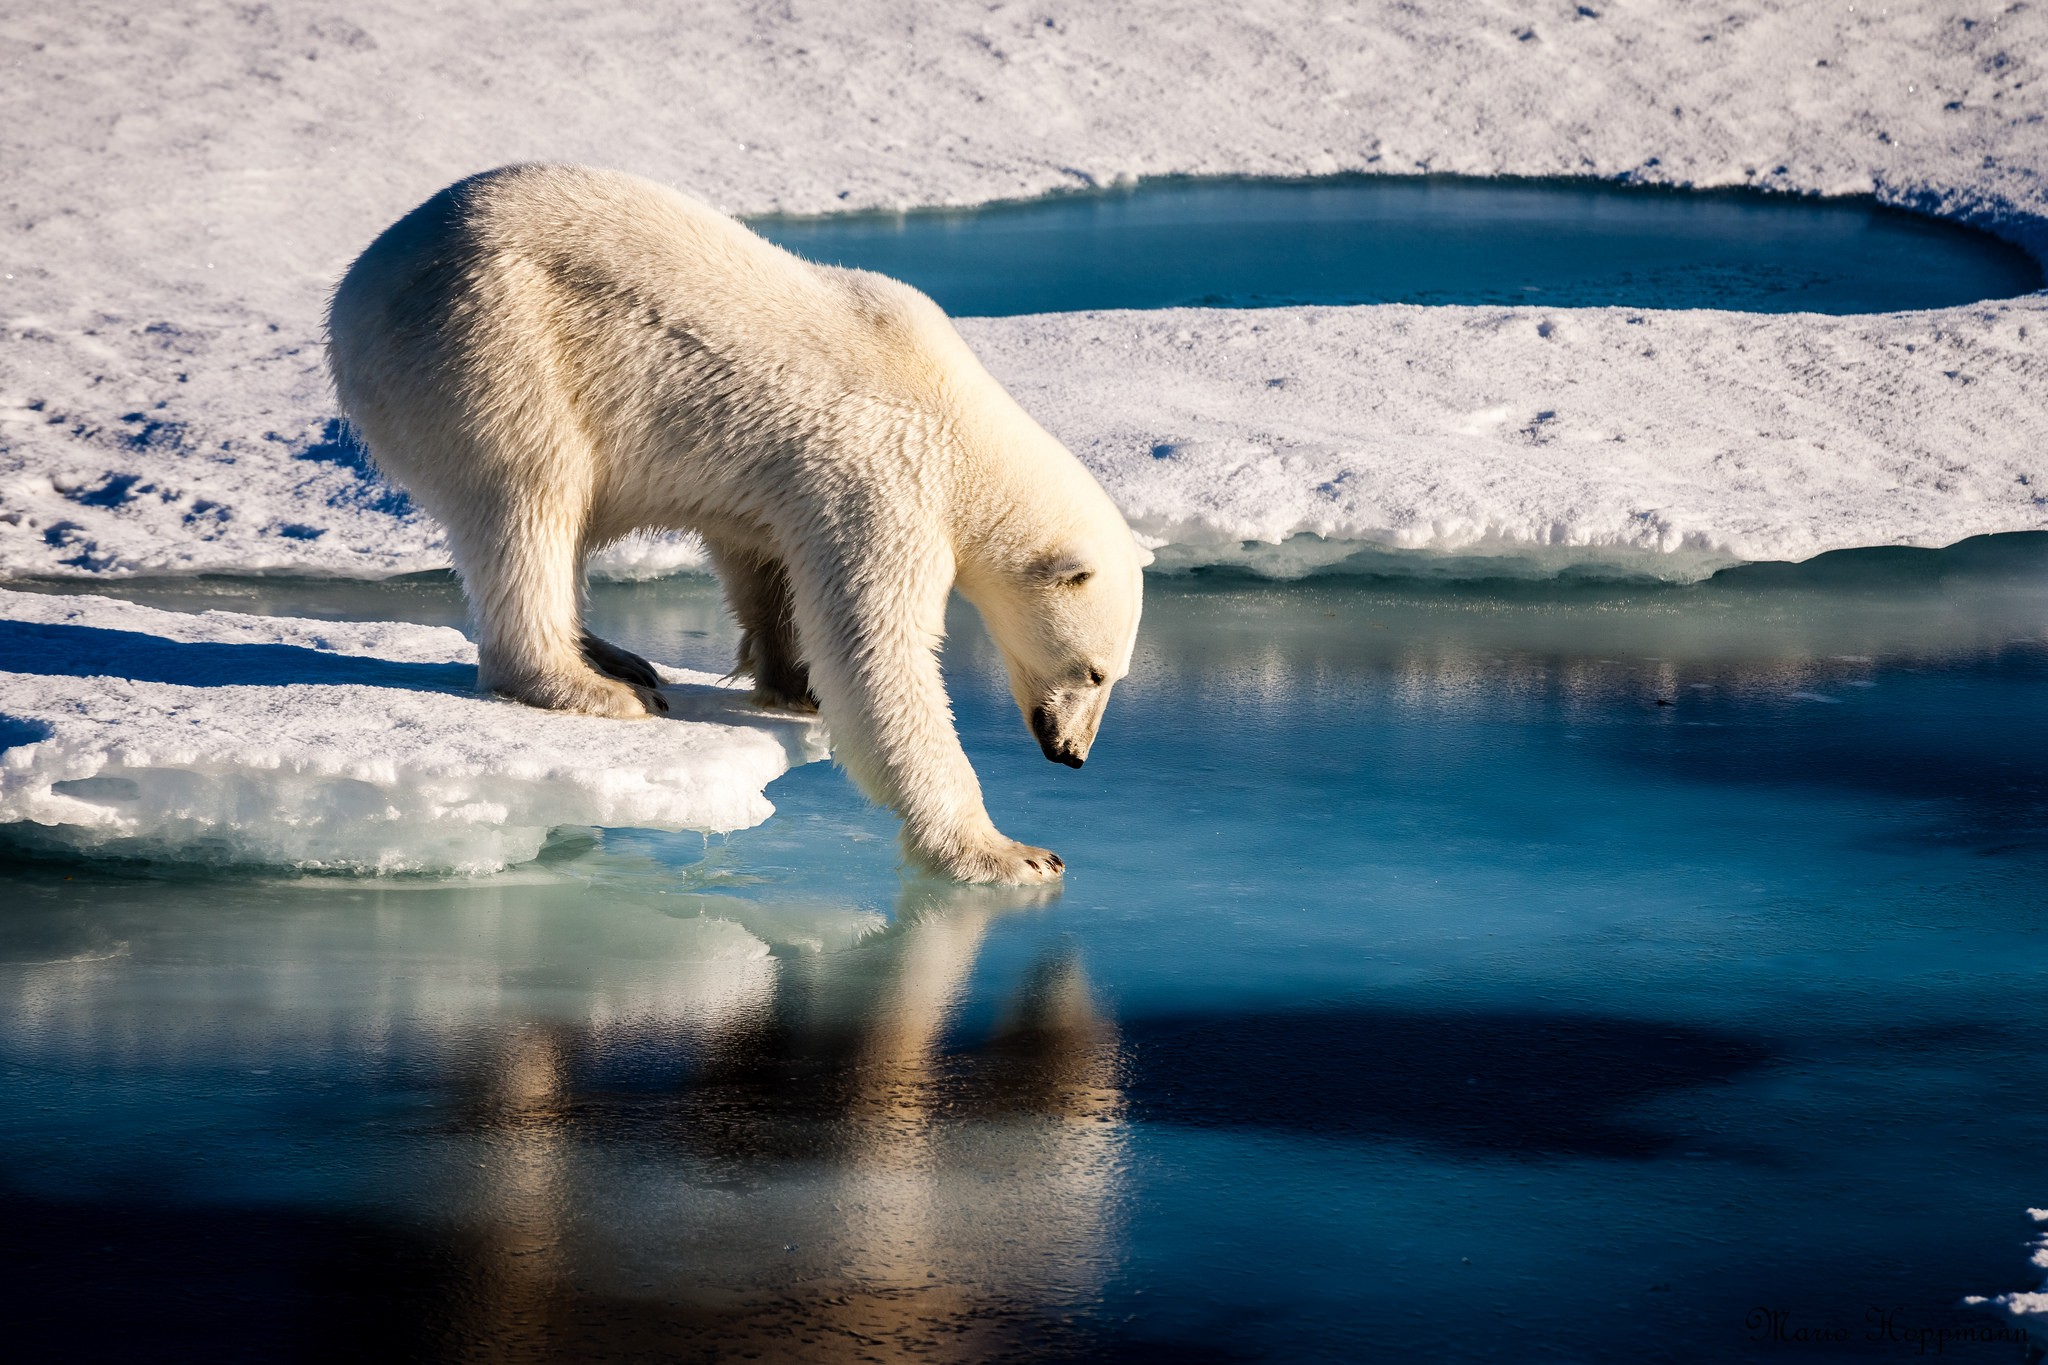 Polar bear standing on an ice-sheet reaching out to touch the water